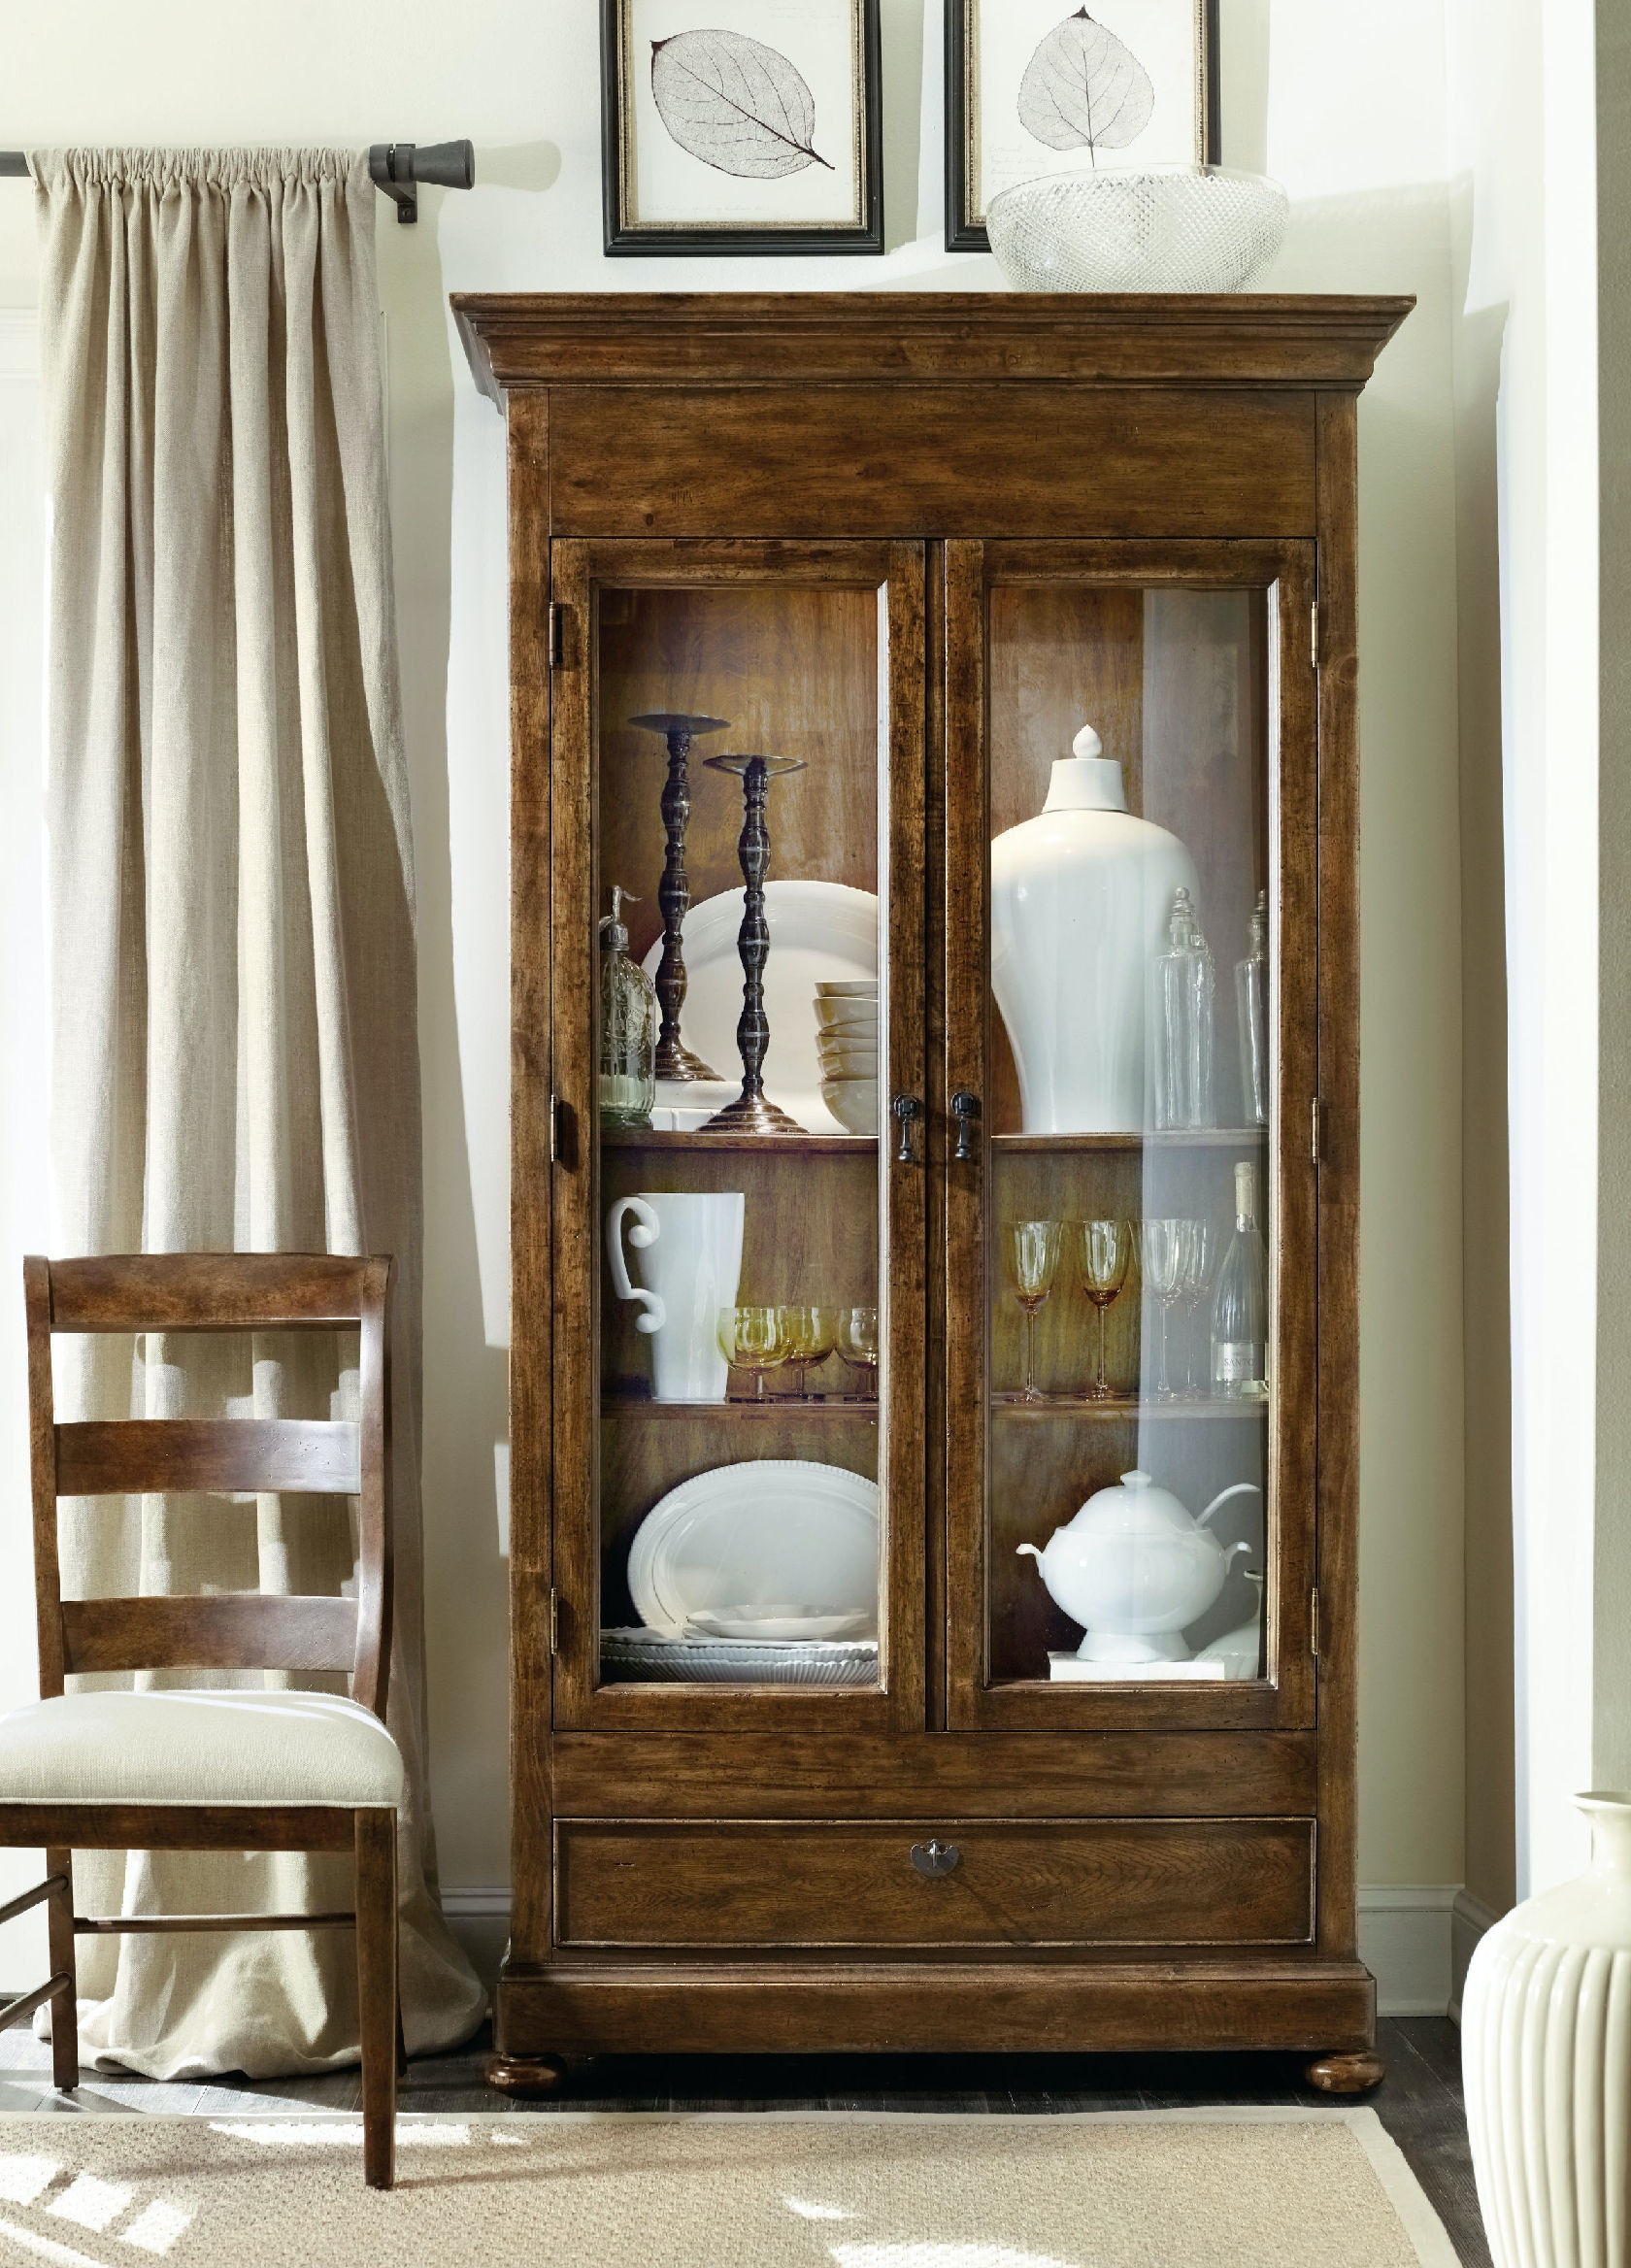 Hooker Furniture Dining Room Archivist Display Cabinet 5447-75908